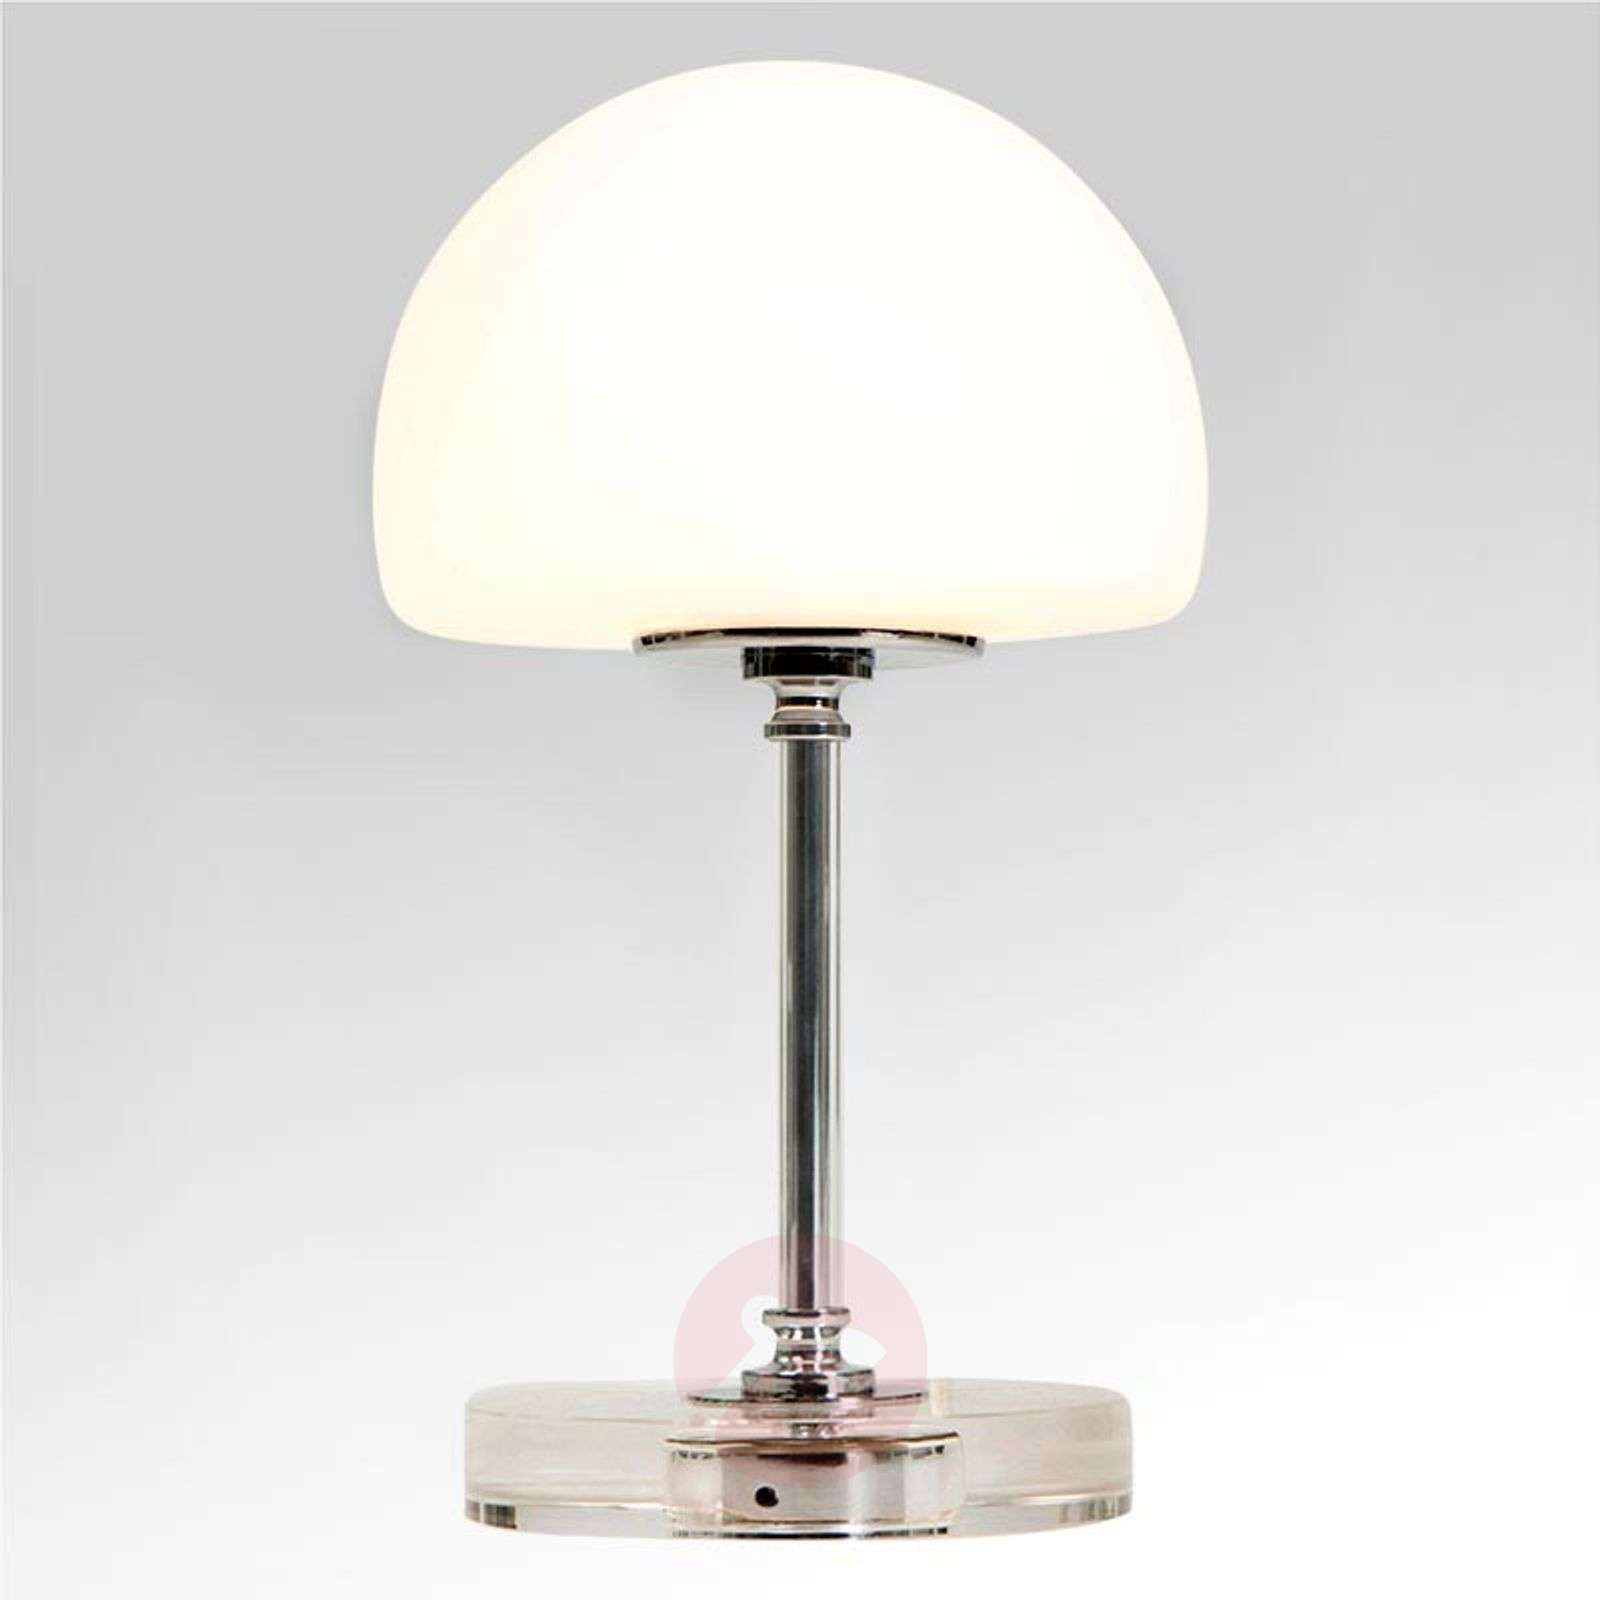 Ancilla chrome-plated LED table lamp with dimmer-8509741-01